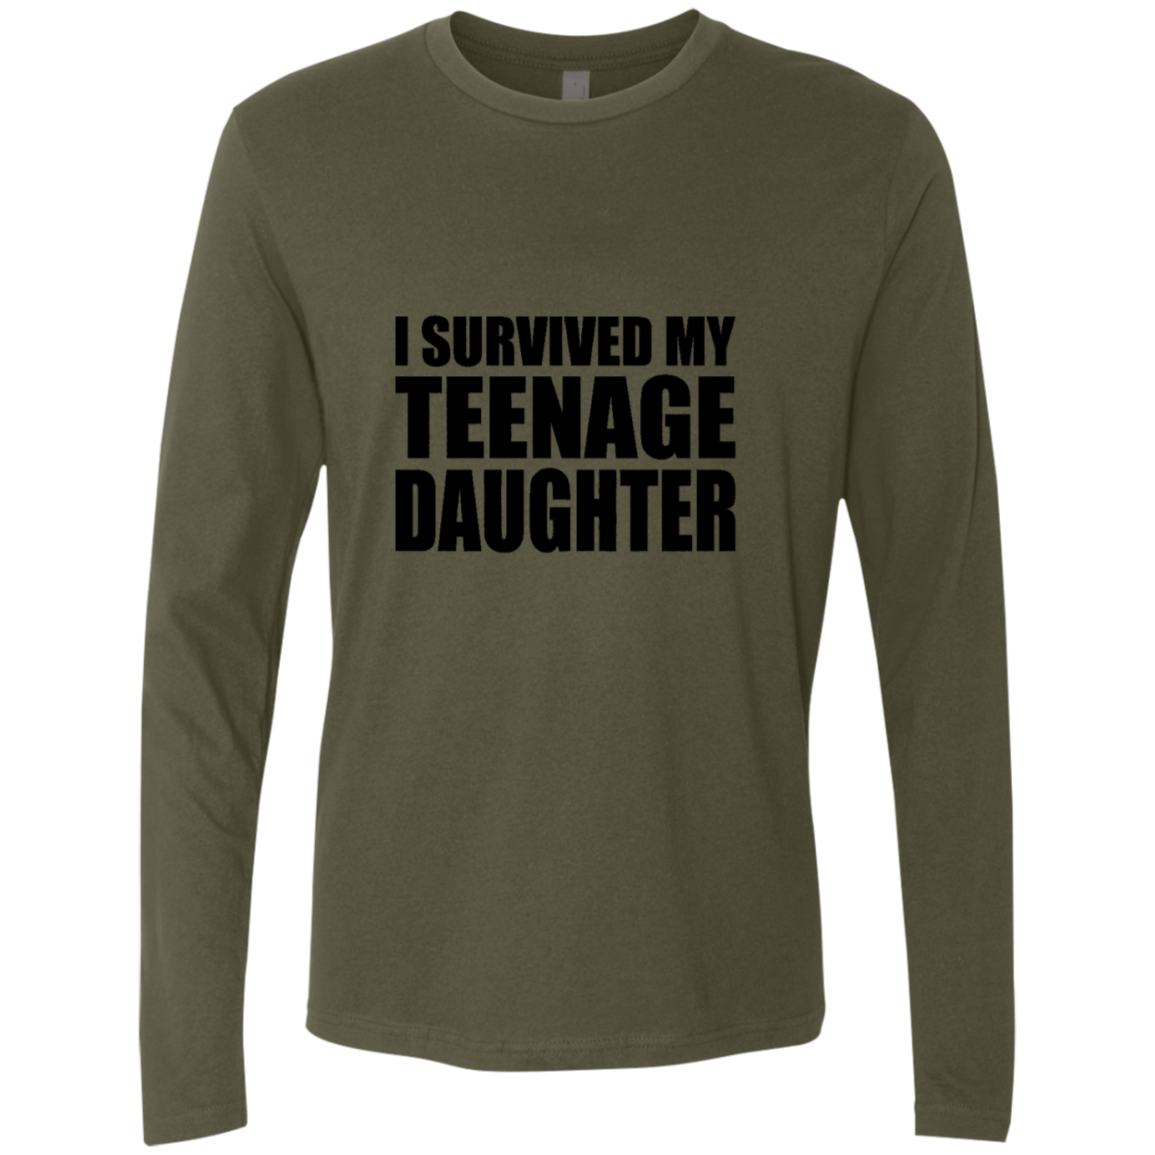 I Survived My Teenage Daughter Men's Long Sleeve Tee